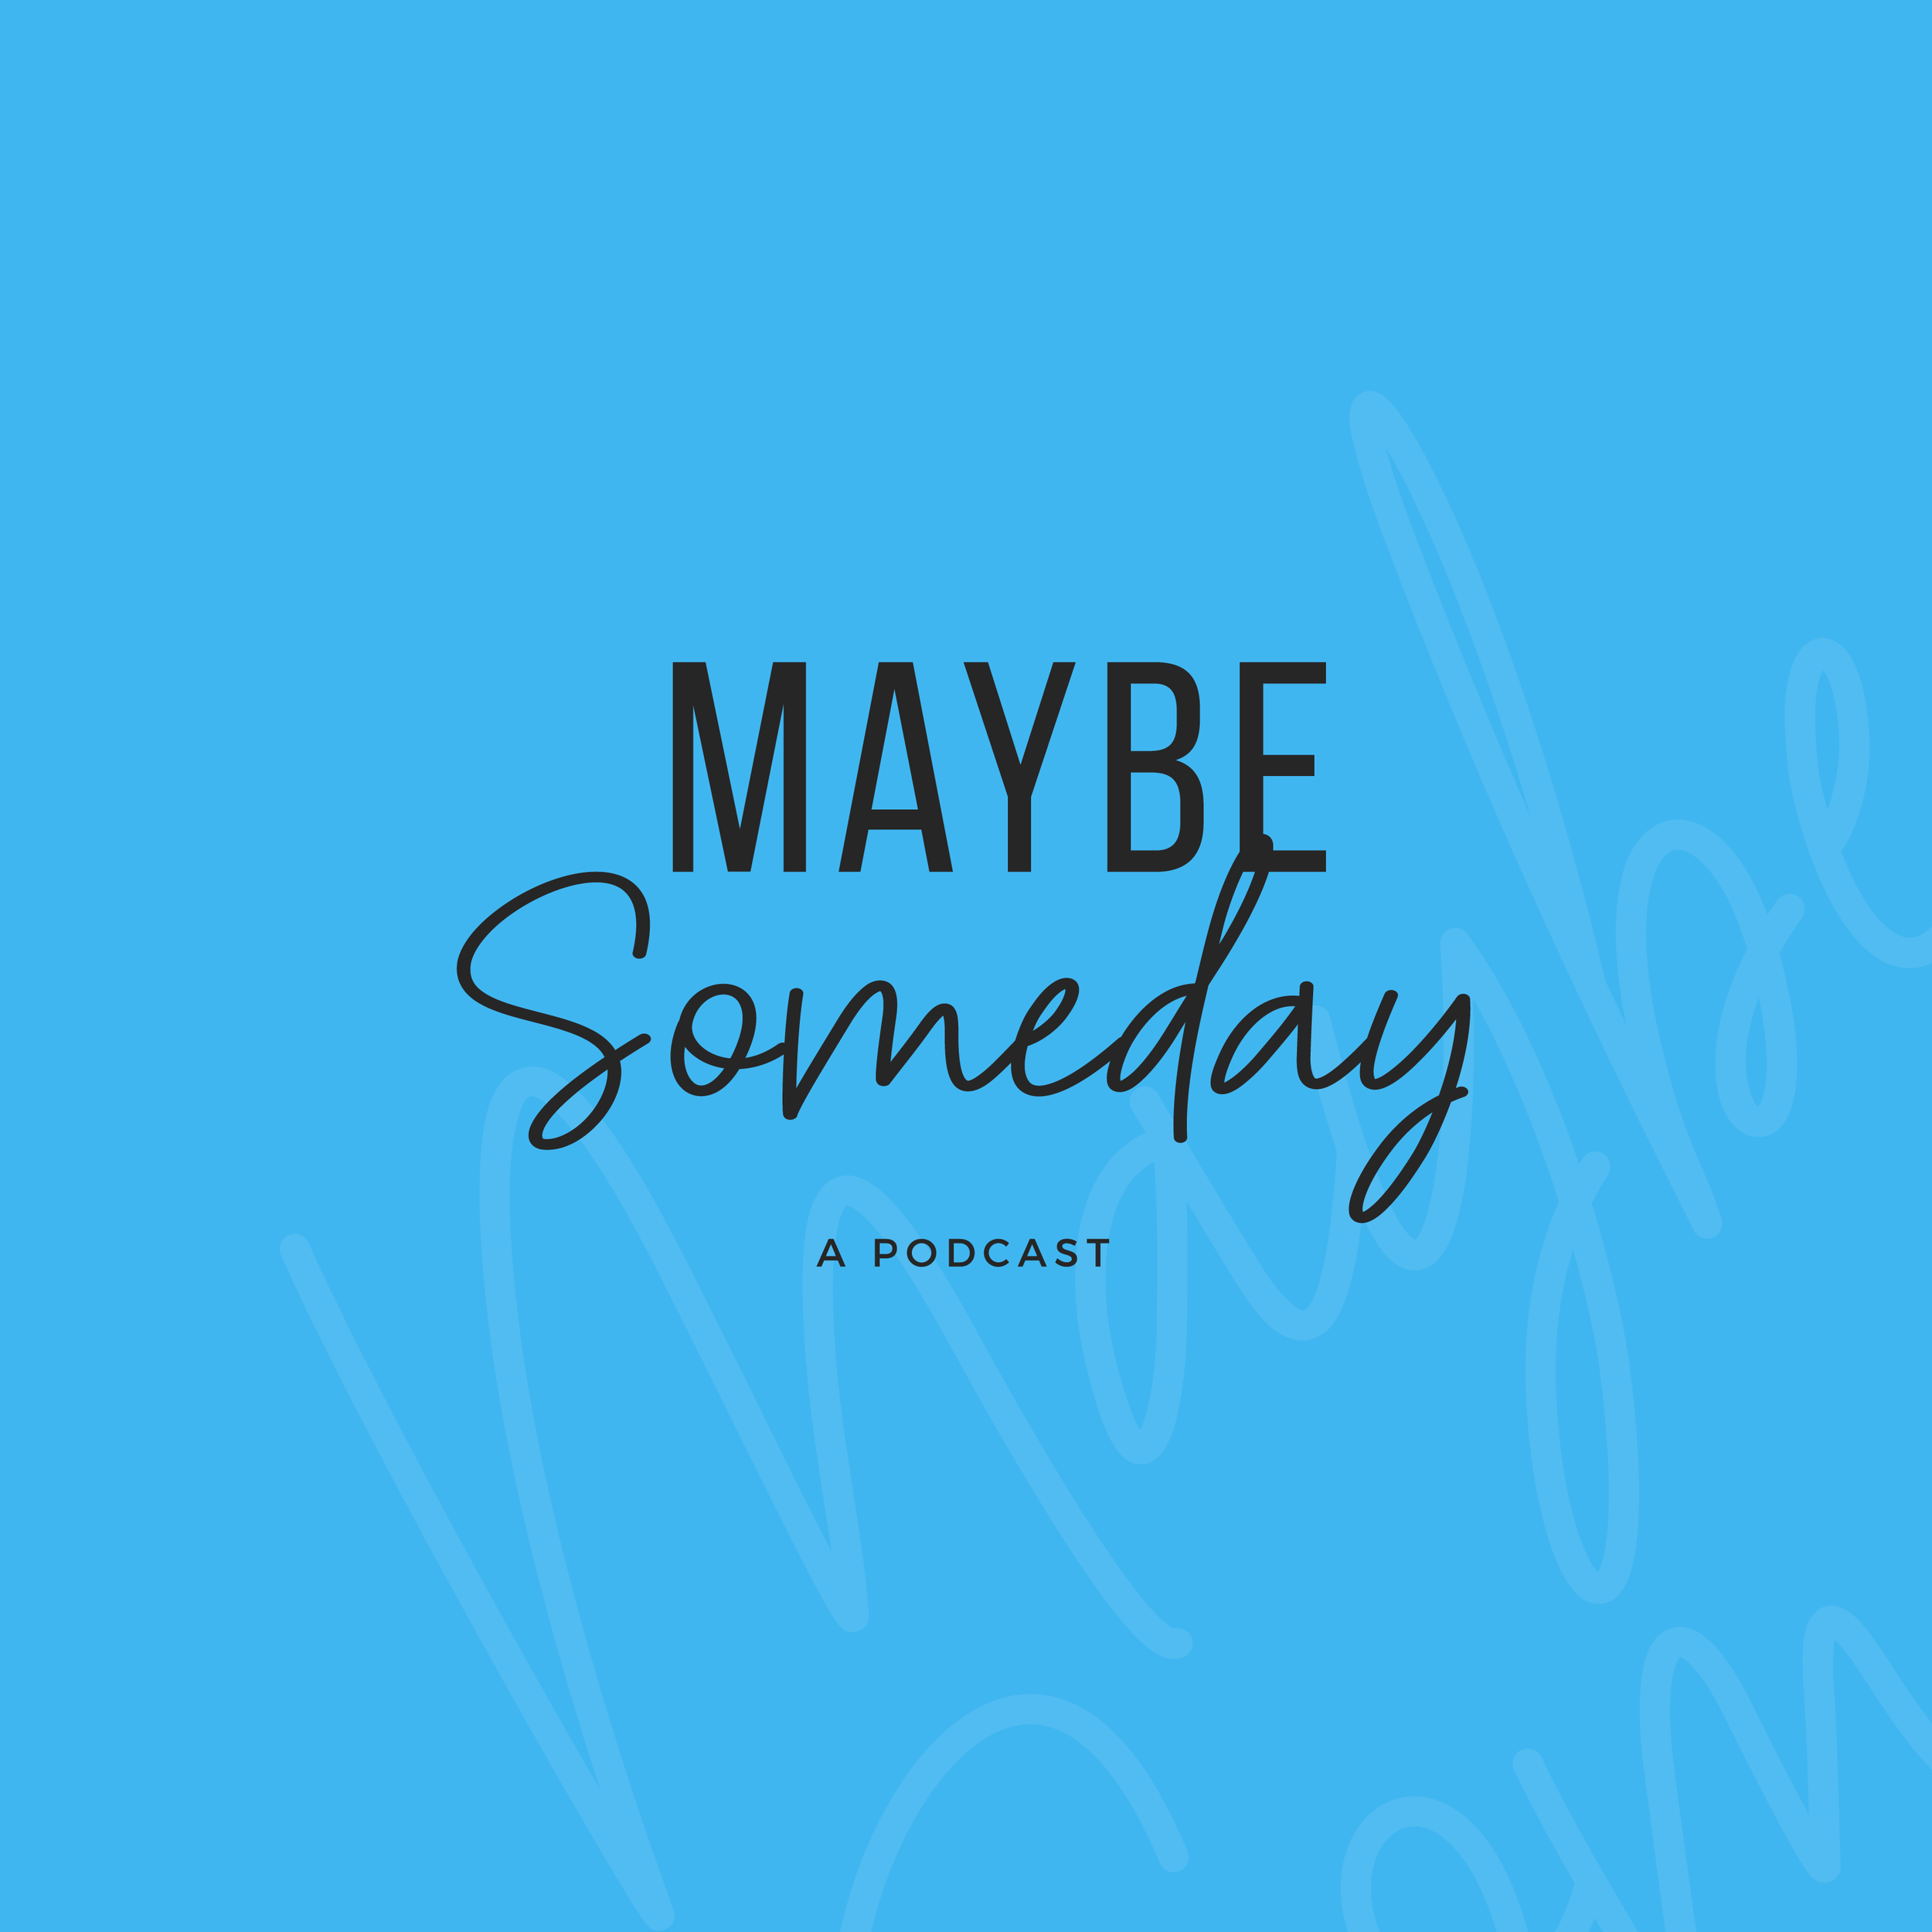 Maybe Someday-Podcast Artwork-08.png